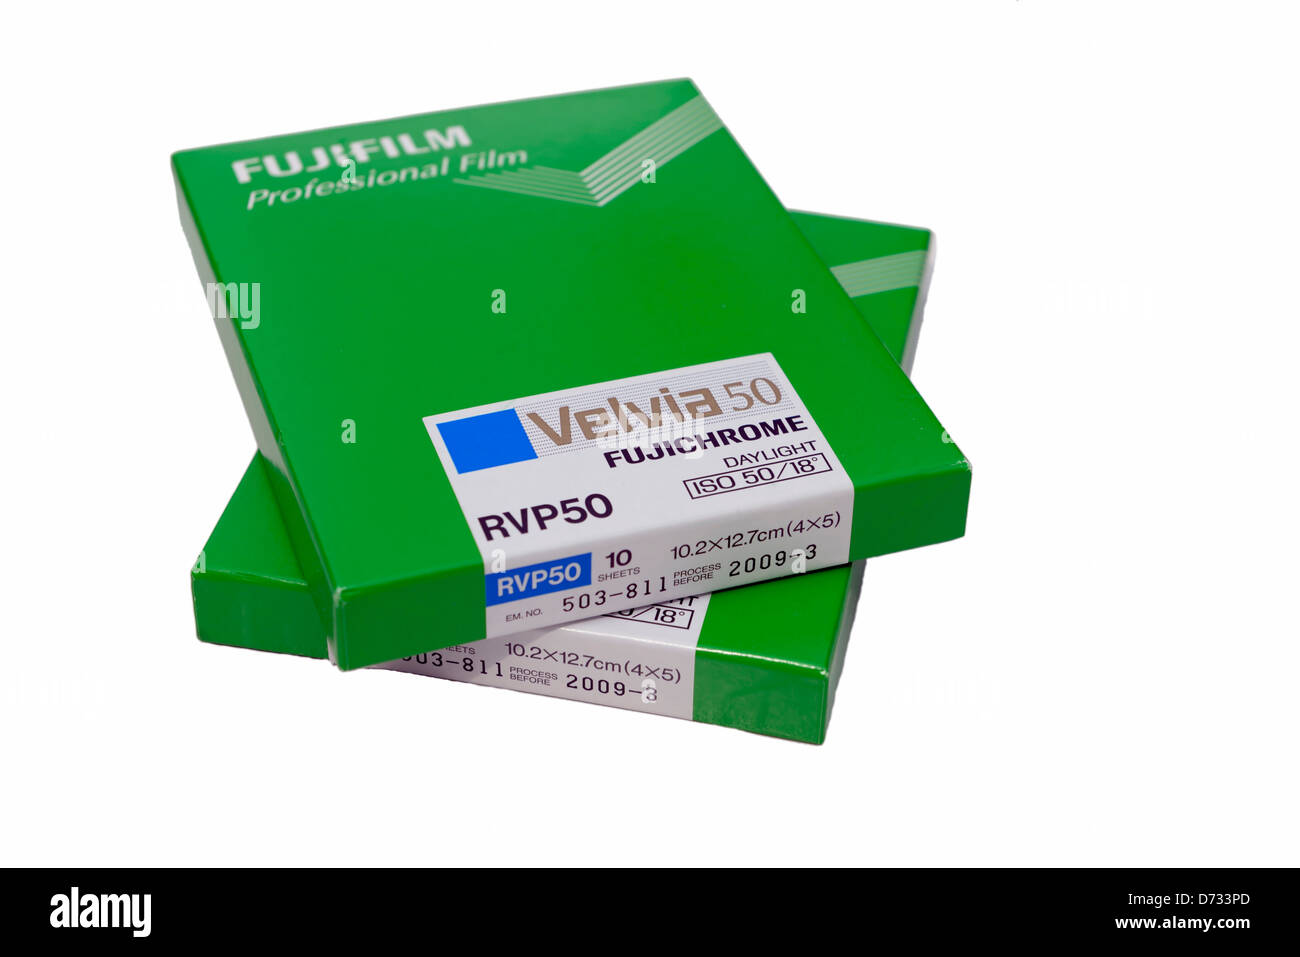 Boxes of Fujifilm Velvia 50 4x5 transparency film - Stock Image